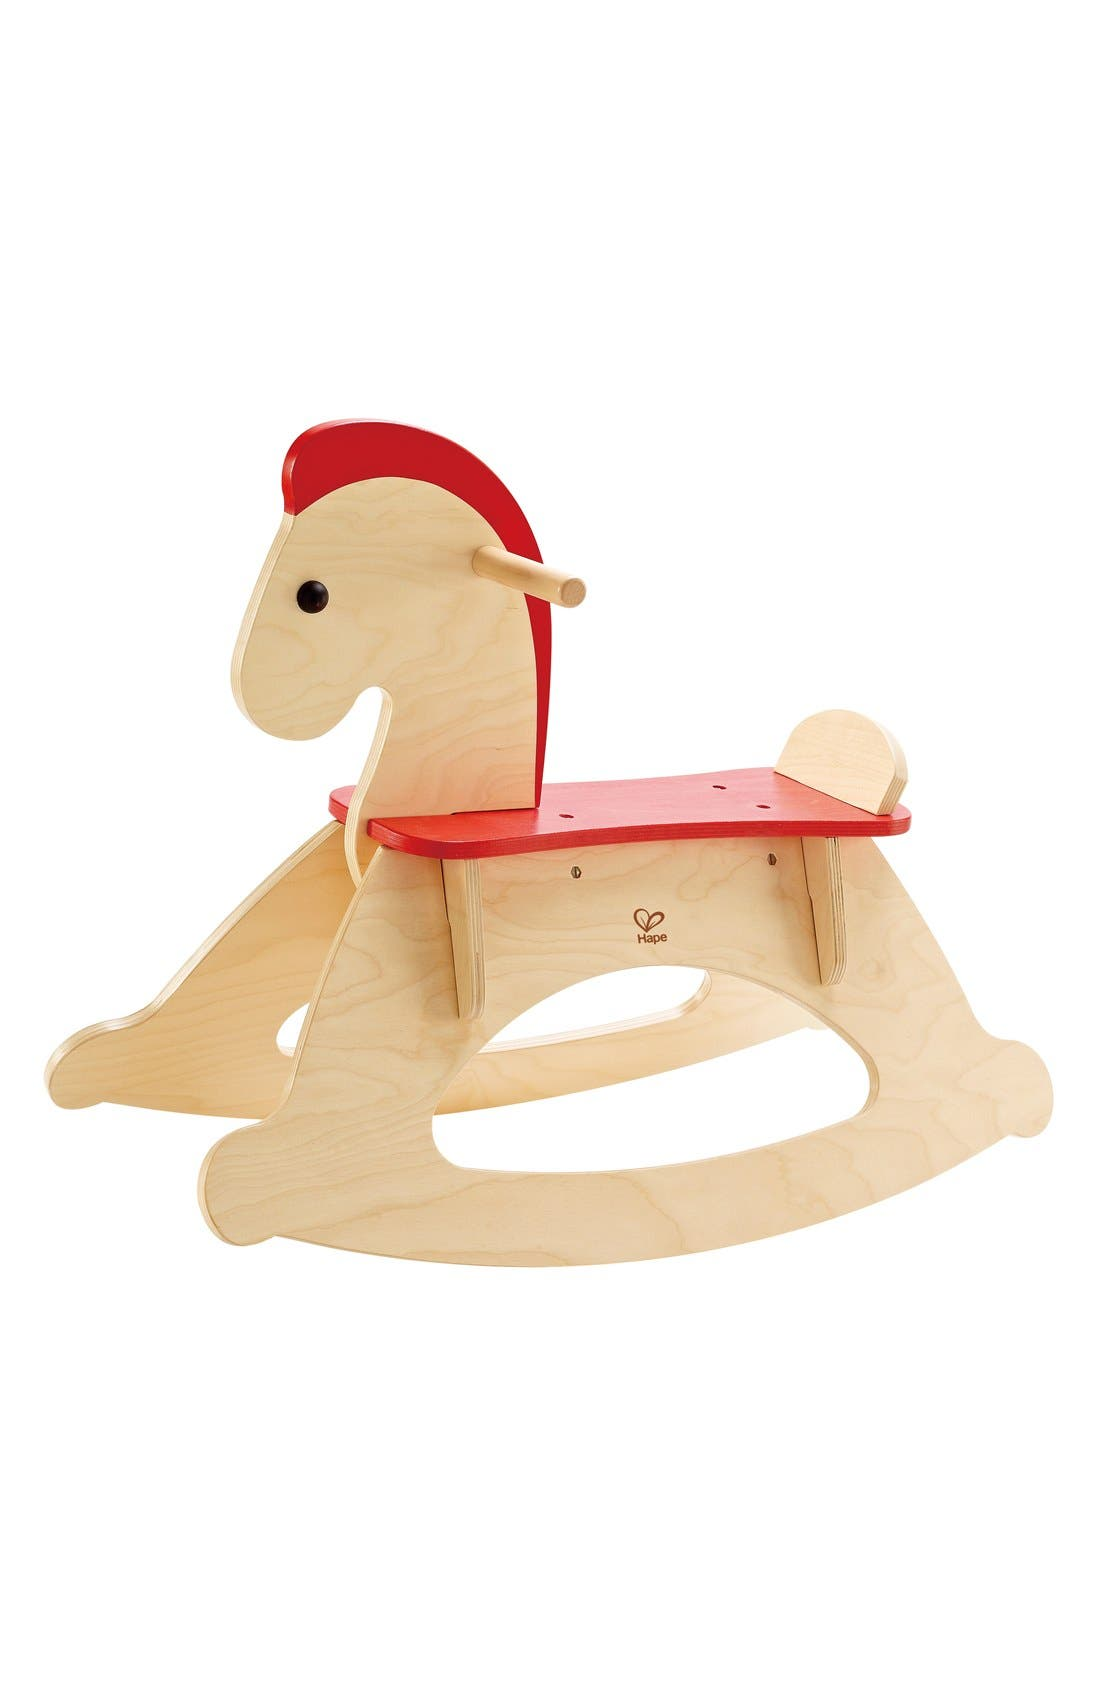 'Rock and Ride' Rocking Horse,                             Main thumbnail 1, color,                             Red